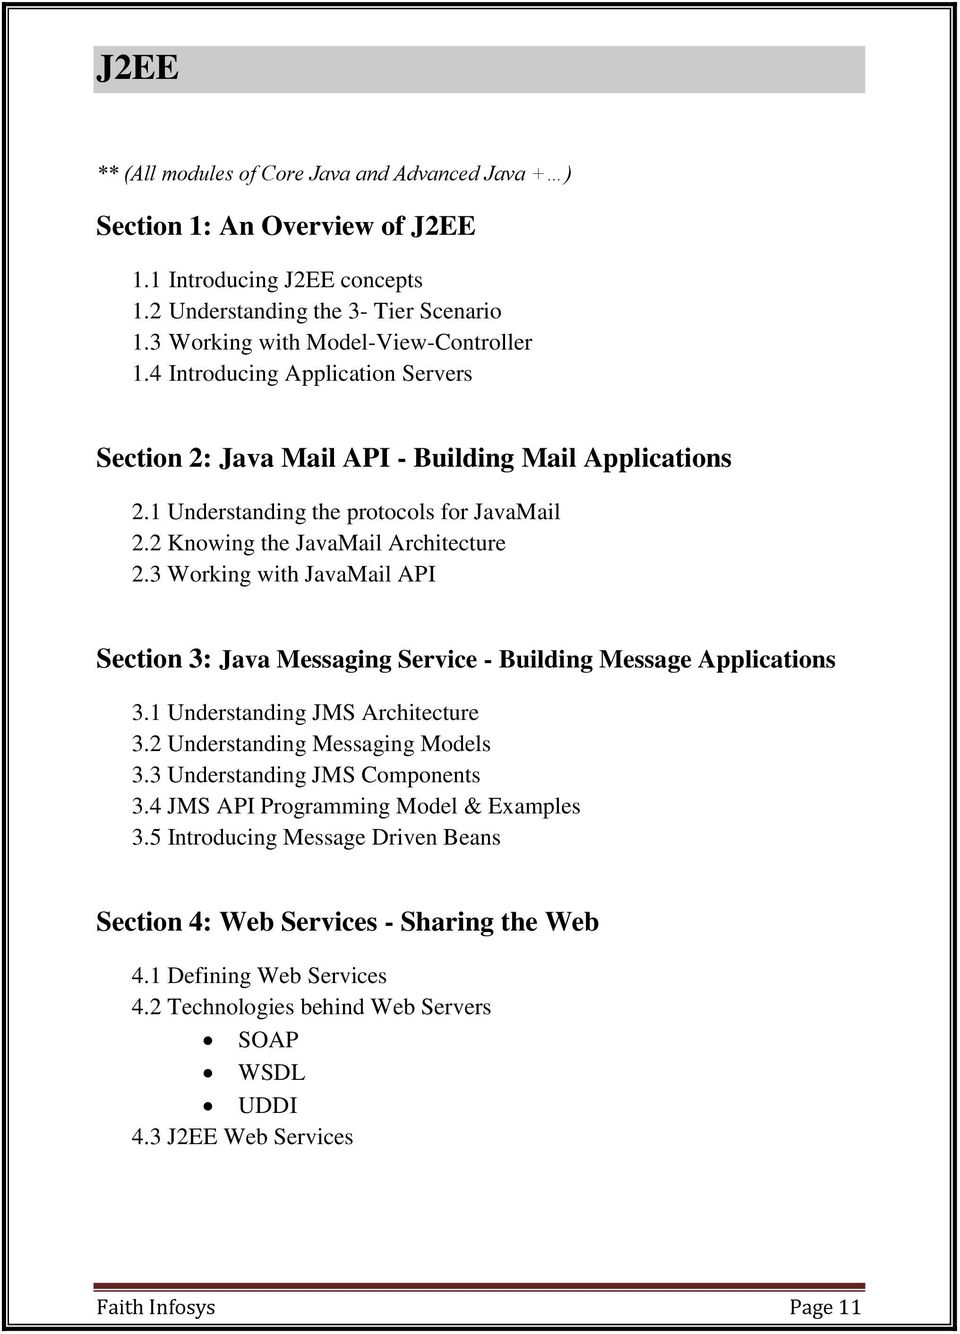 3 Working with JavaMail API Section 3: Java Messaging Service - Building Message Applications 3.1 Understanding JMS Architecture 3.2 Understanding Messaging Models 3.3 Understanding JMS Components 3.